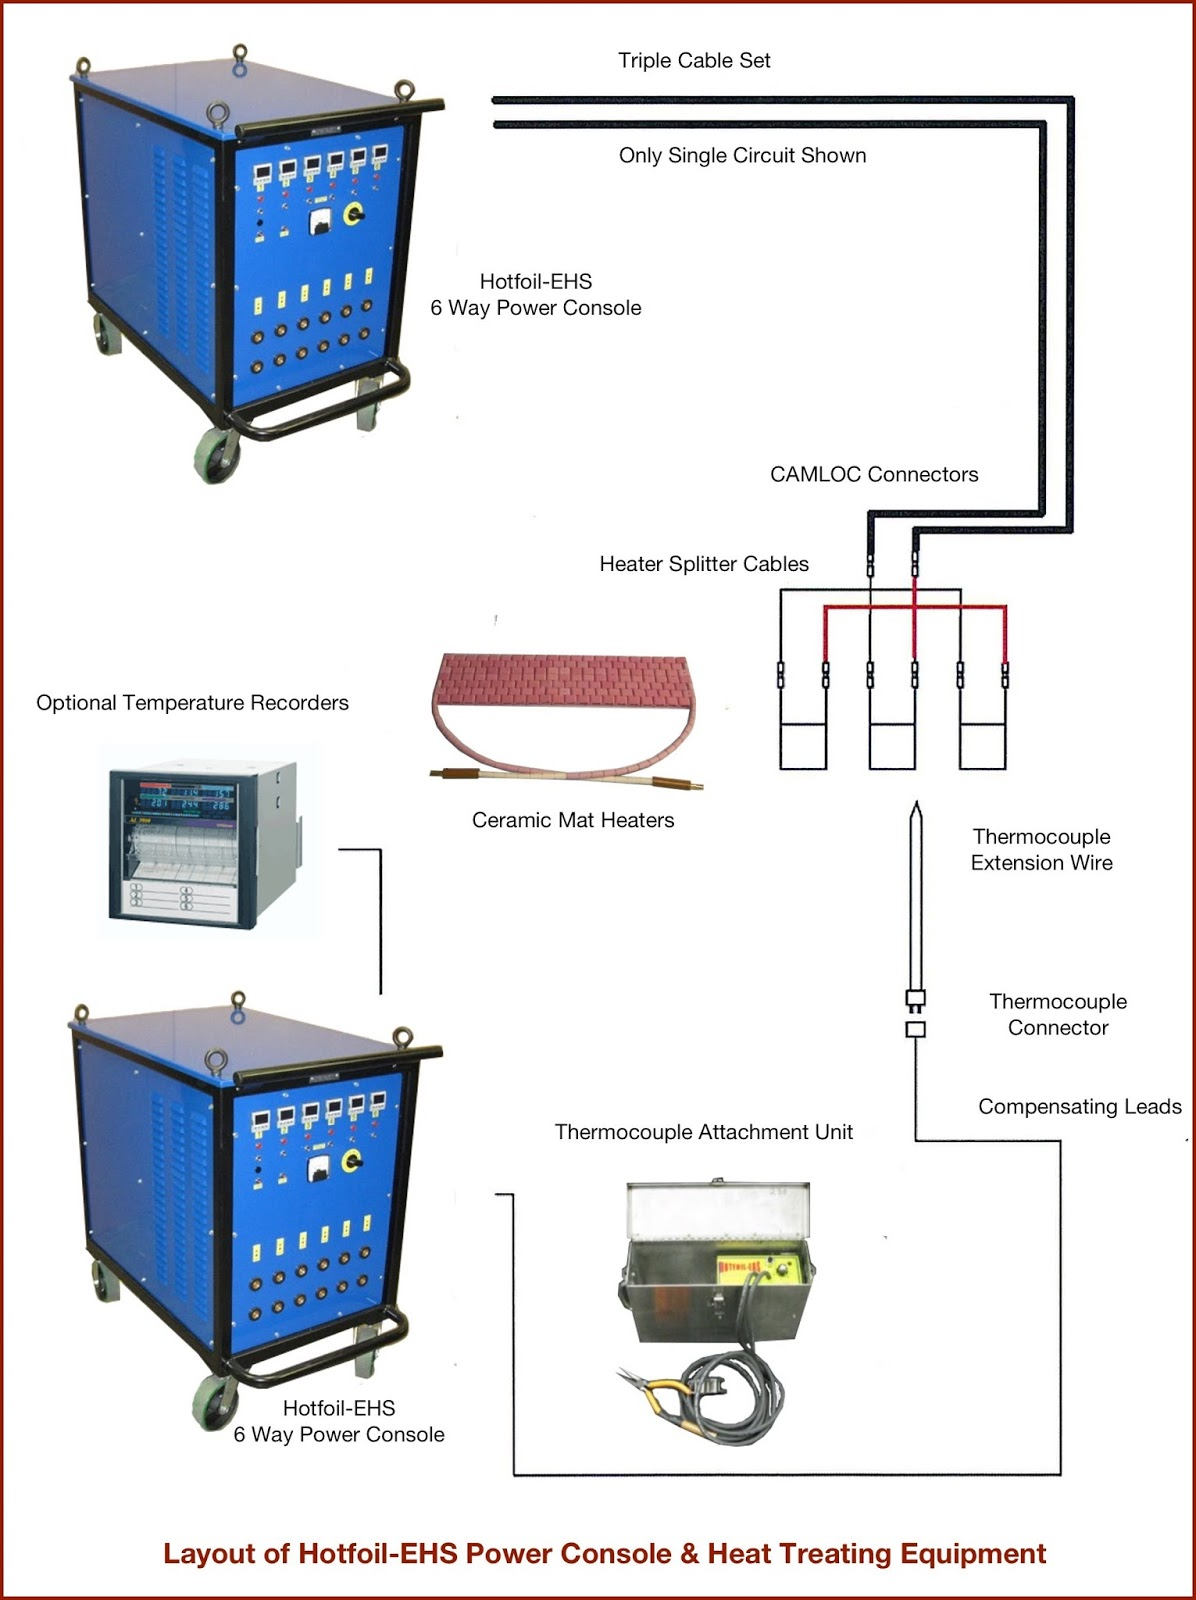 Diagram Of Equipment For Typical Weld Heat Treating Hotfoil Ehs Welding More Information Visit Hotfoilehscom Or Call 6095880900